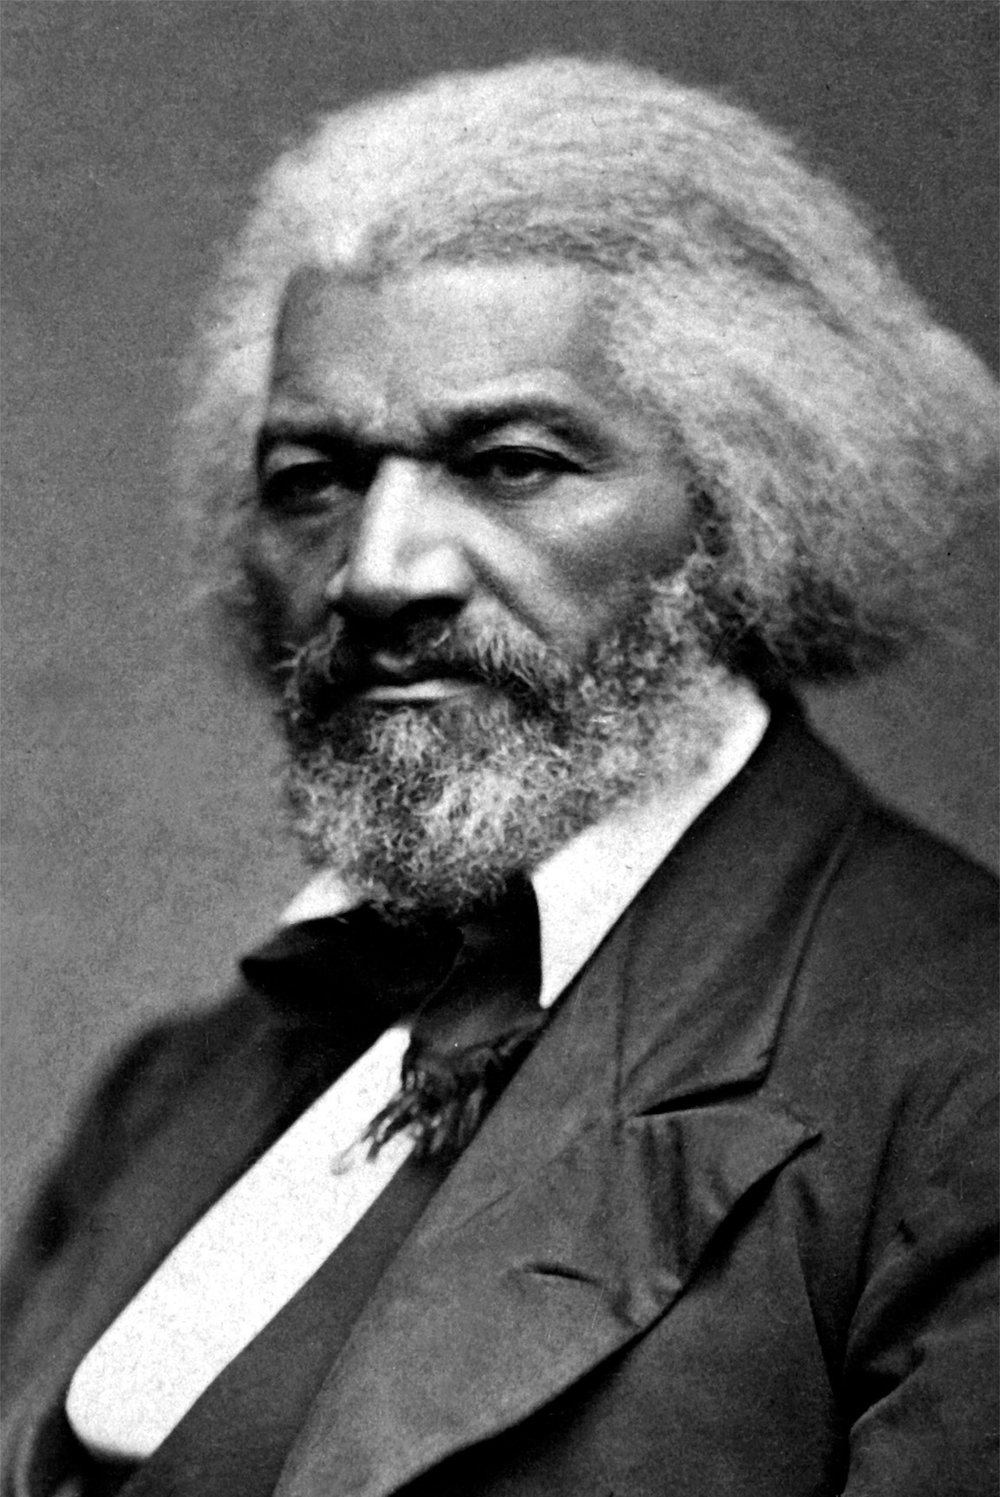 Copy of Frederick Douglas